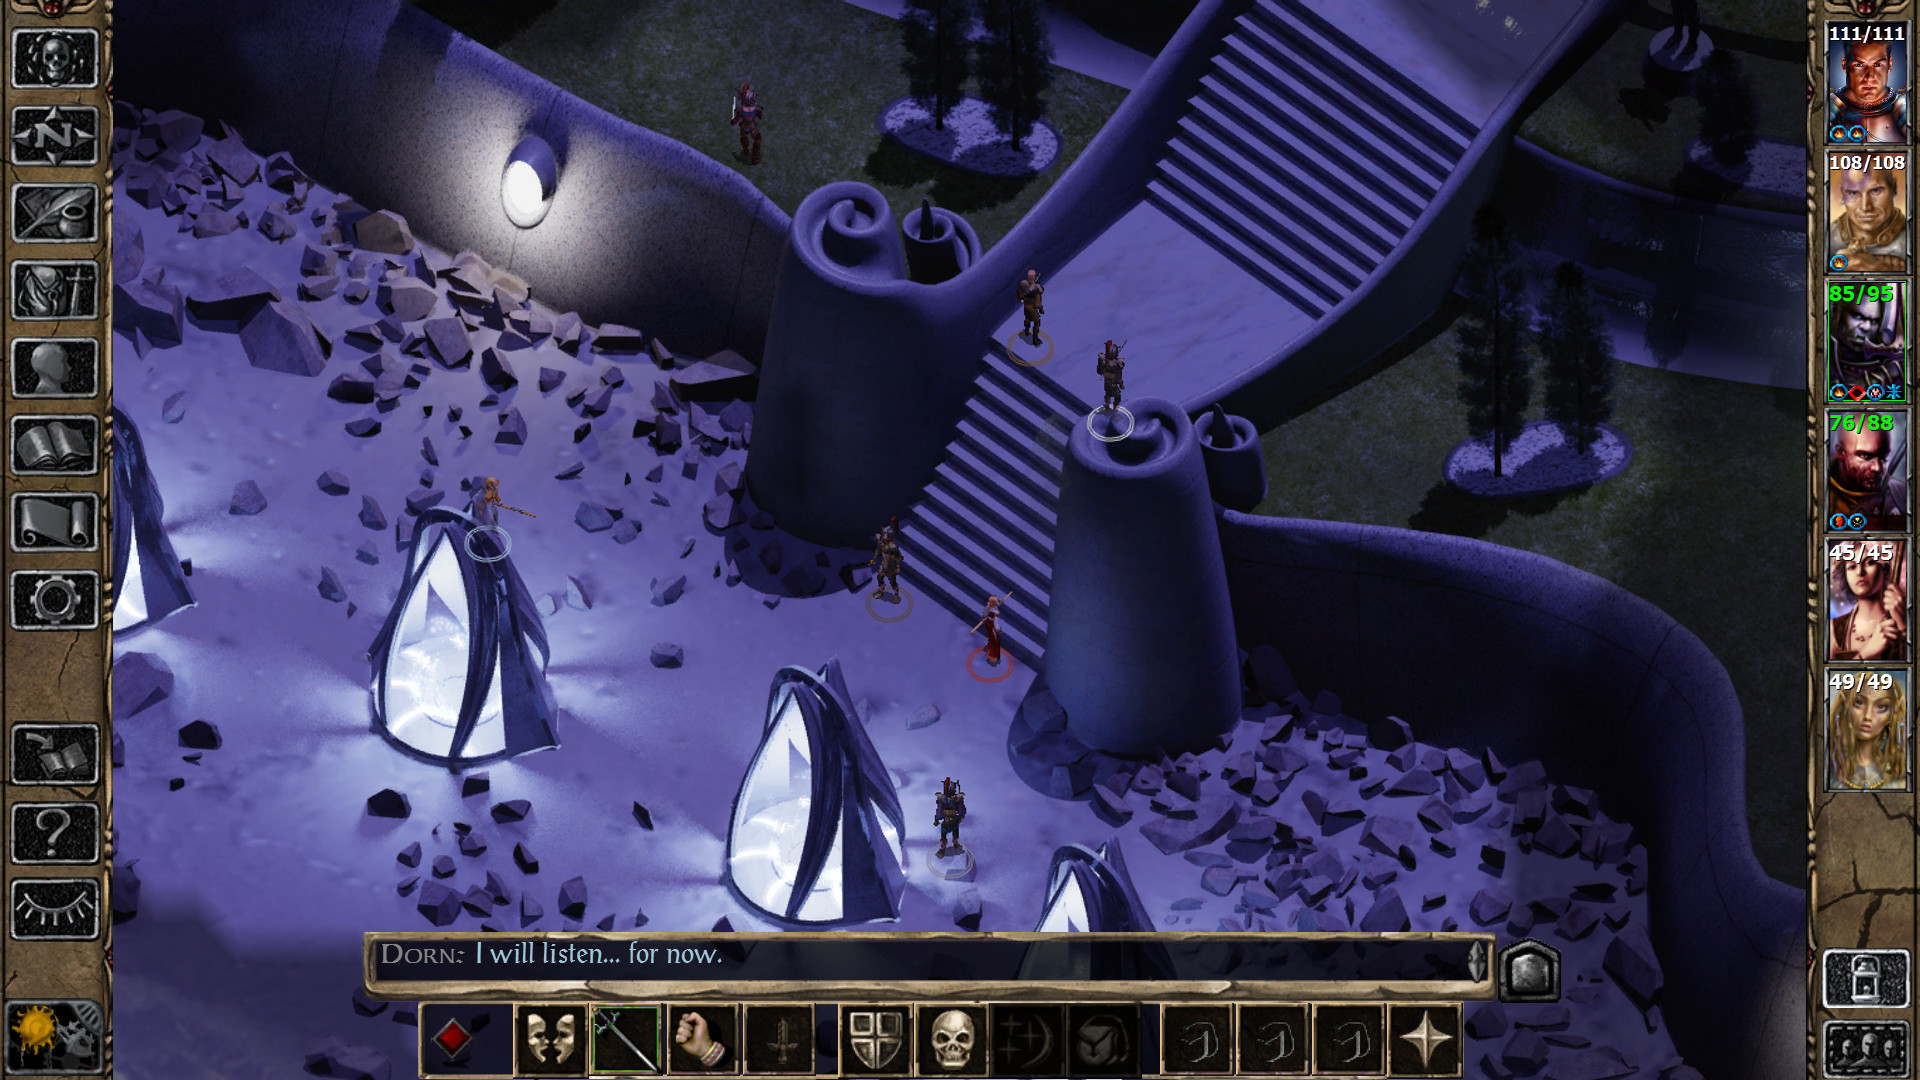 Baldur's Gate and Planescape Torment enhanced editions publisher working on new IP